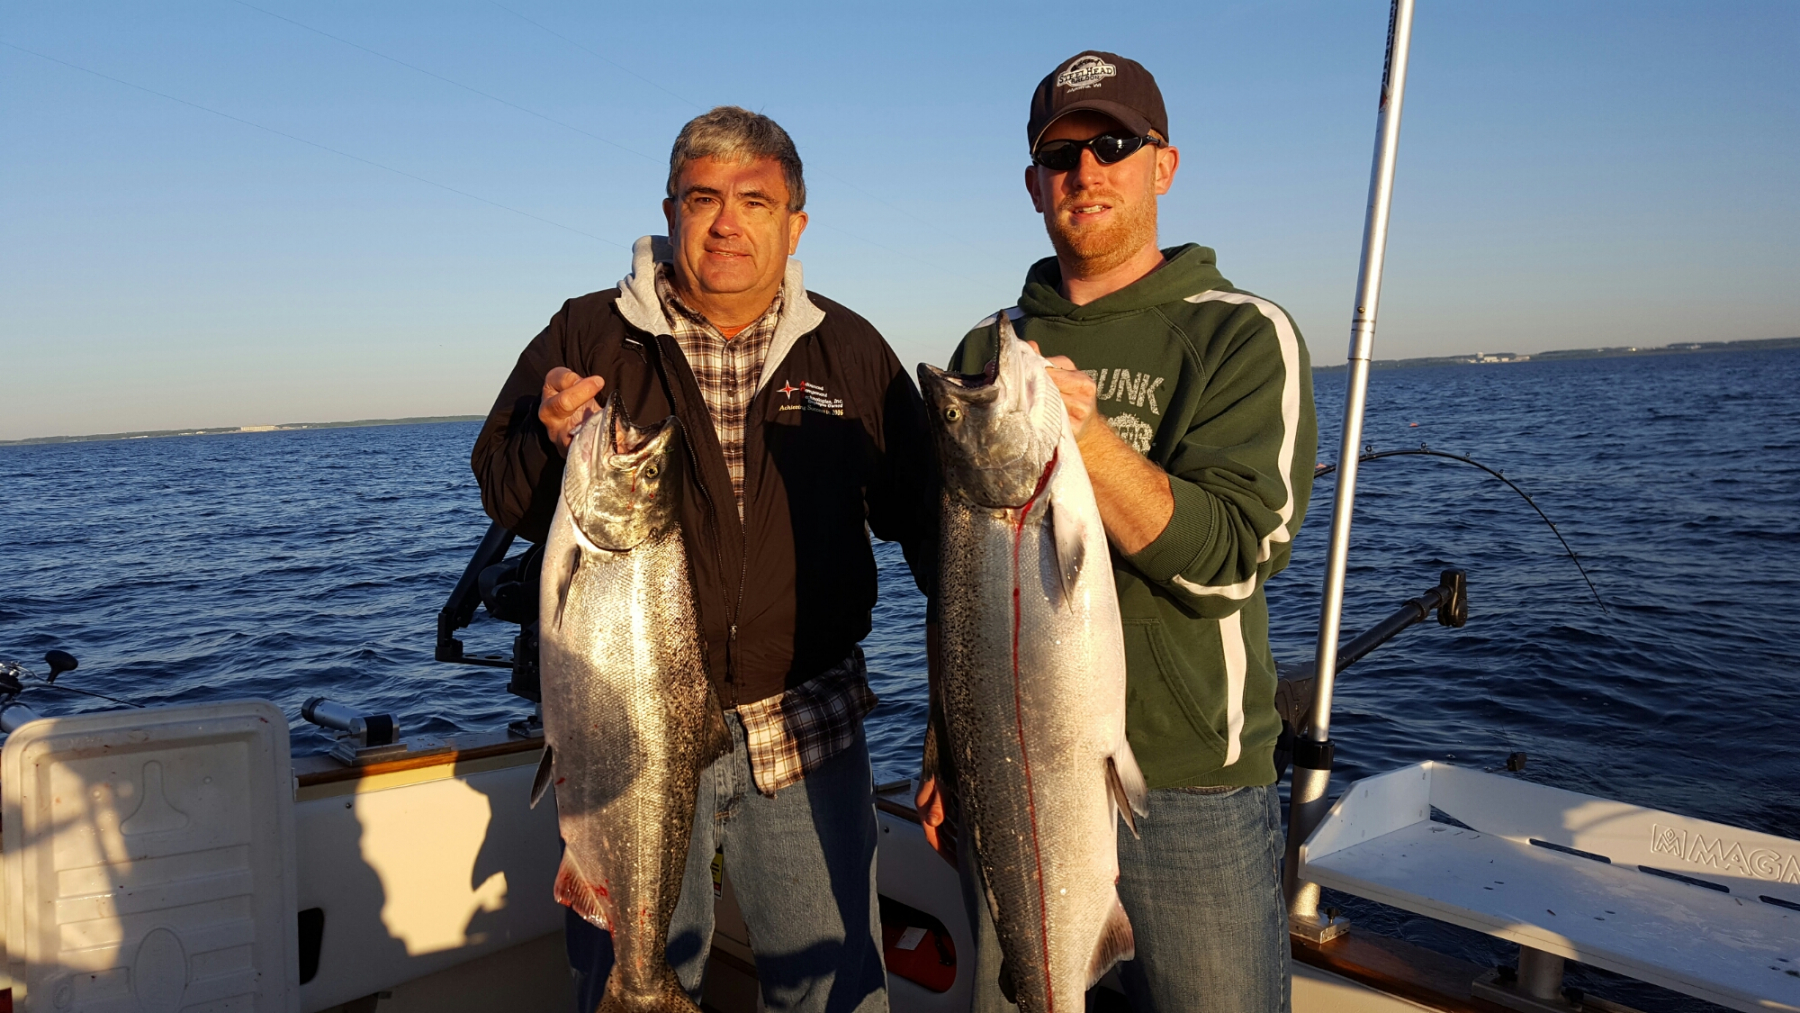 Captain Steve Grose, Slam Dunk Charters on Lake Michigan in Kewaunee Wisconsin